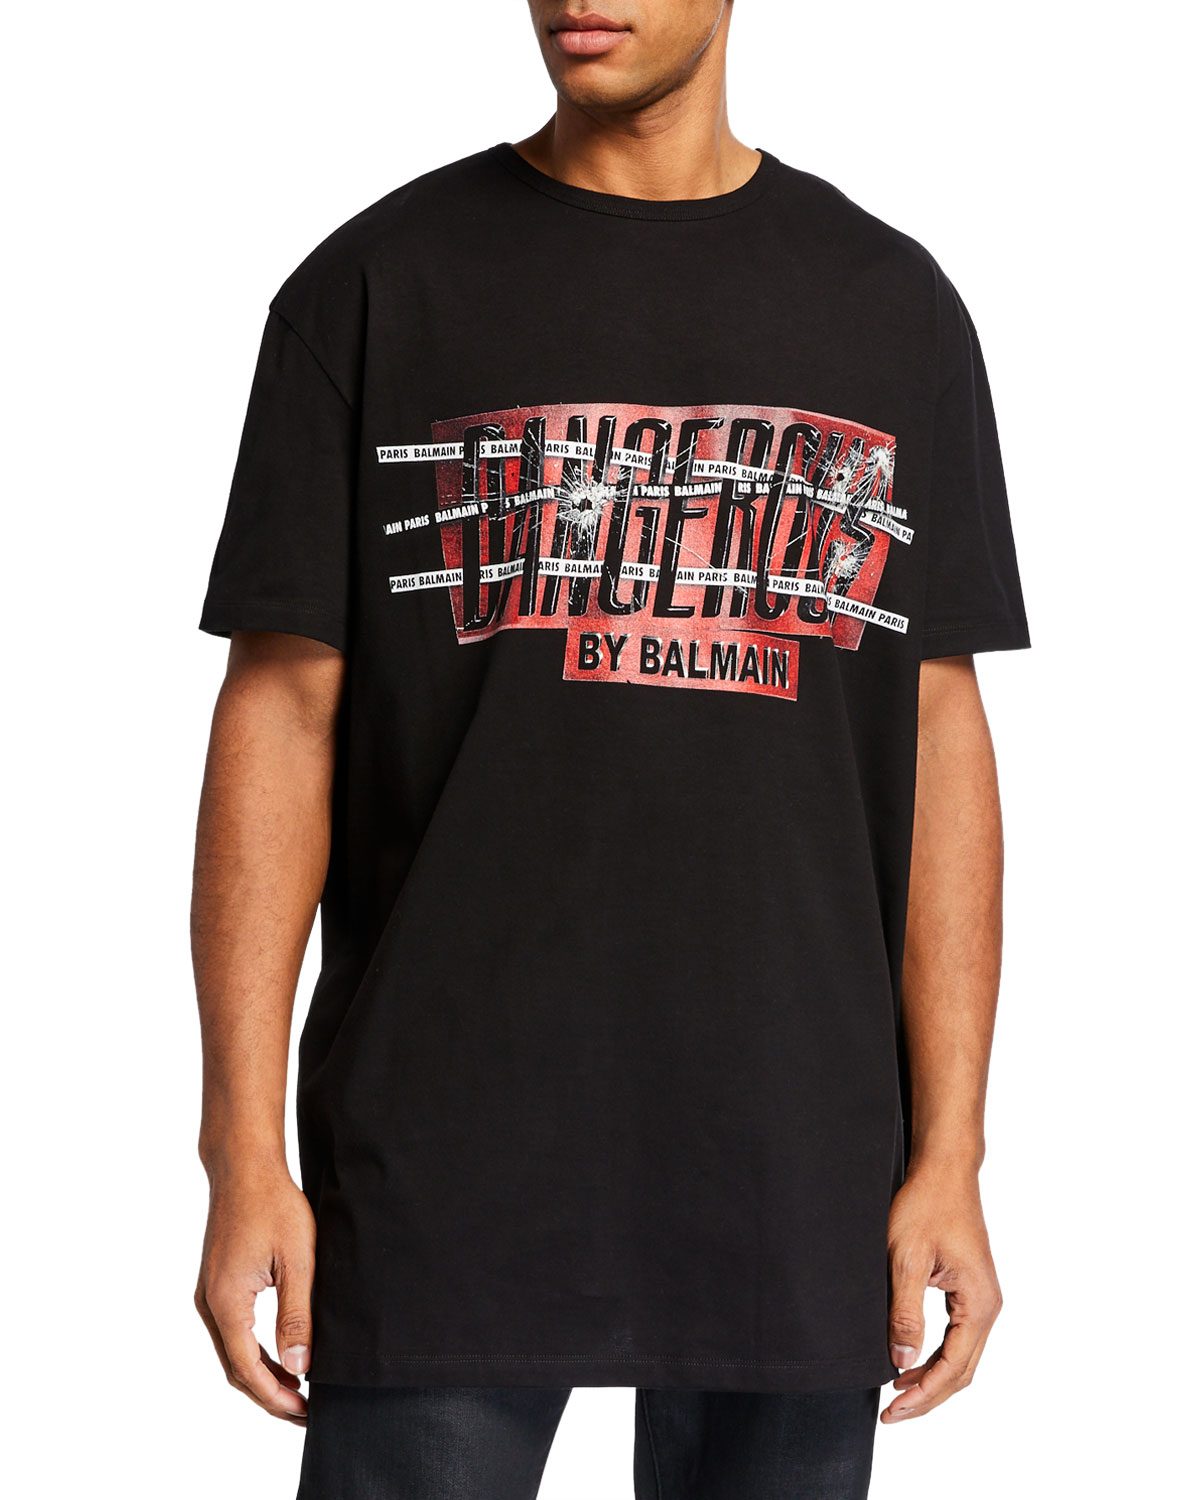 480f7137 Balmain Men's Dangerous Graphic T-Shirt | Neiman Marcus